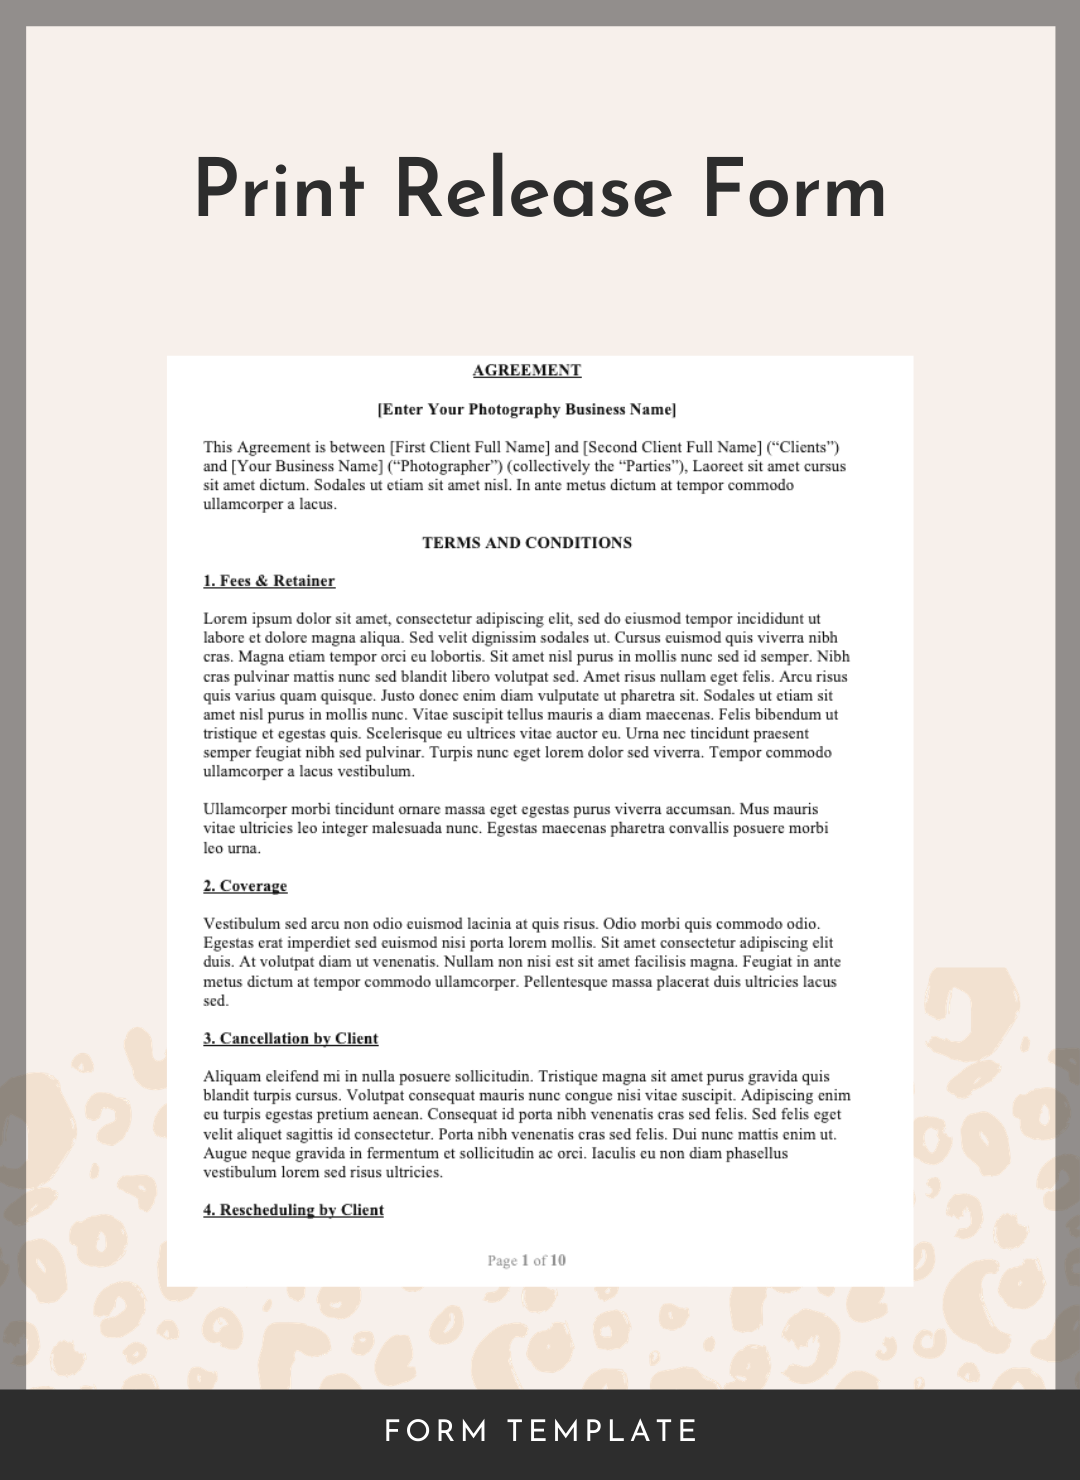 Print Release Form